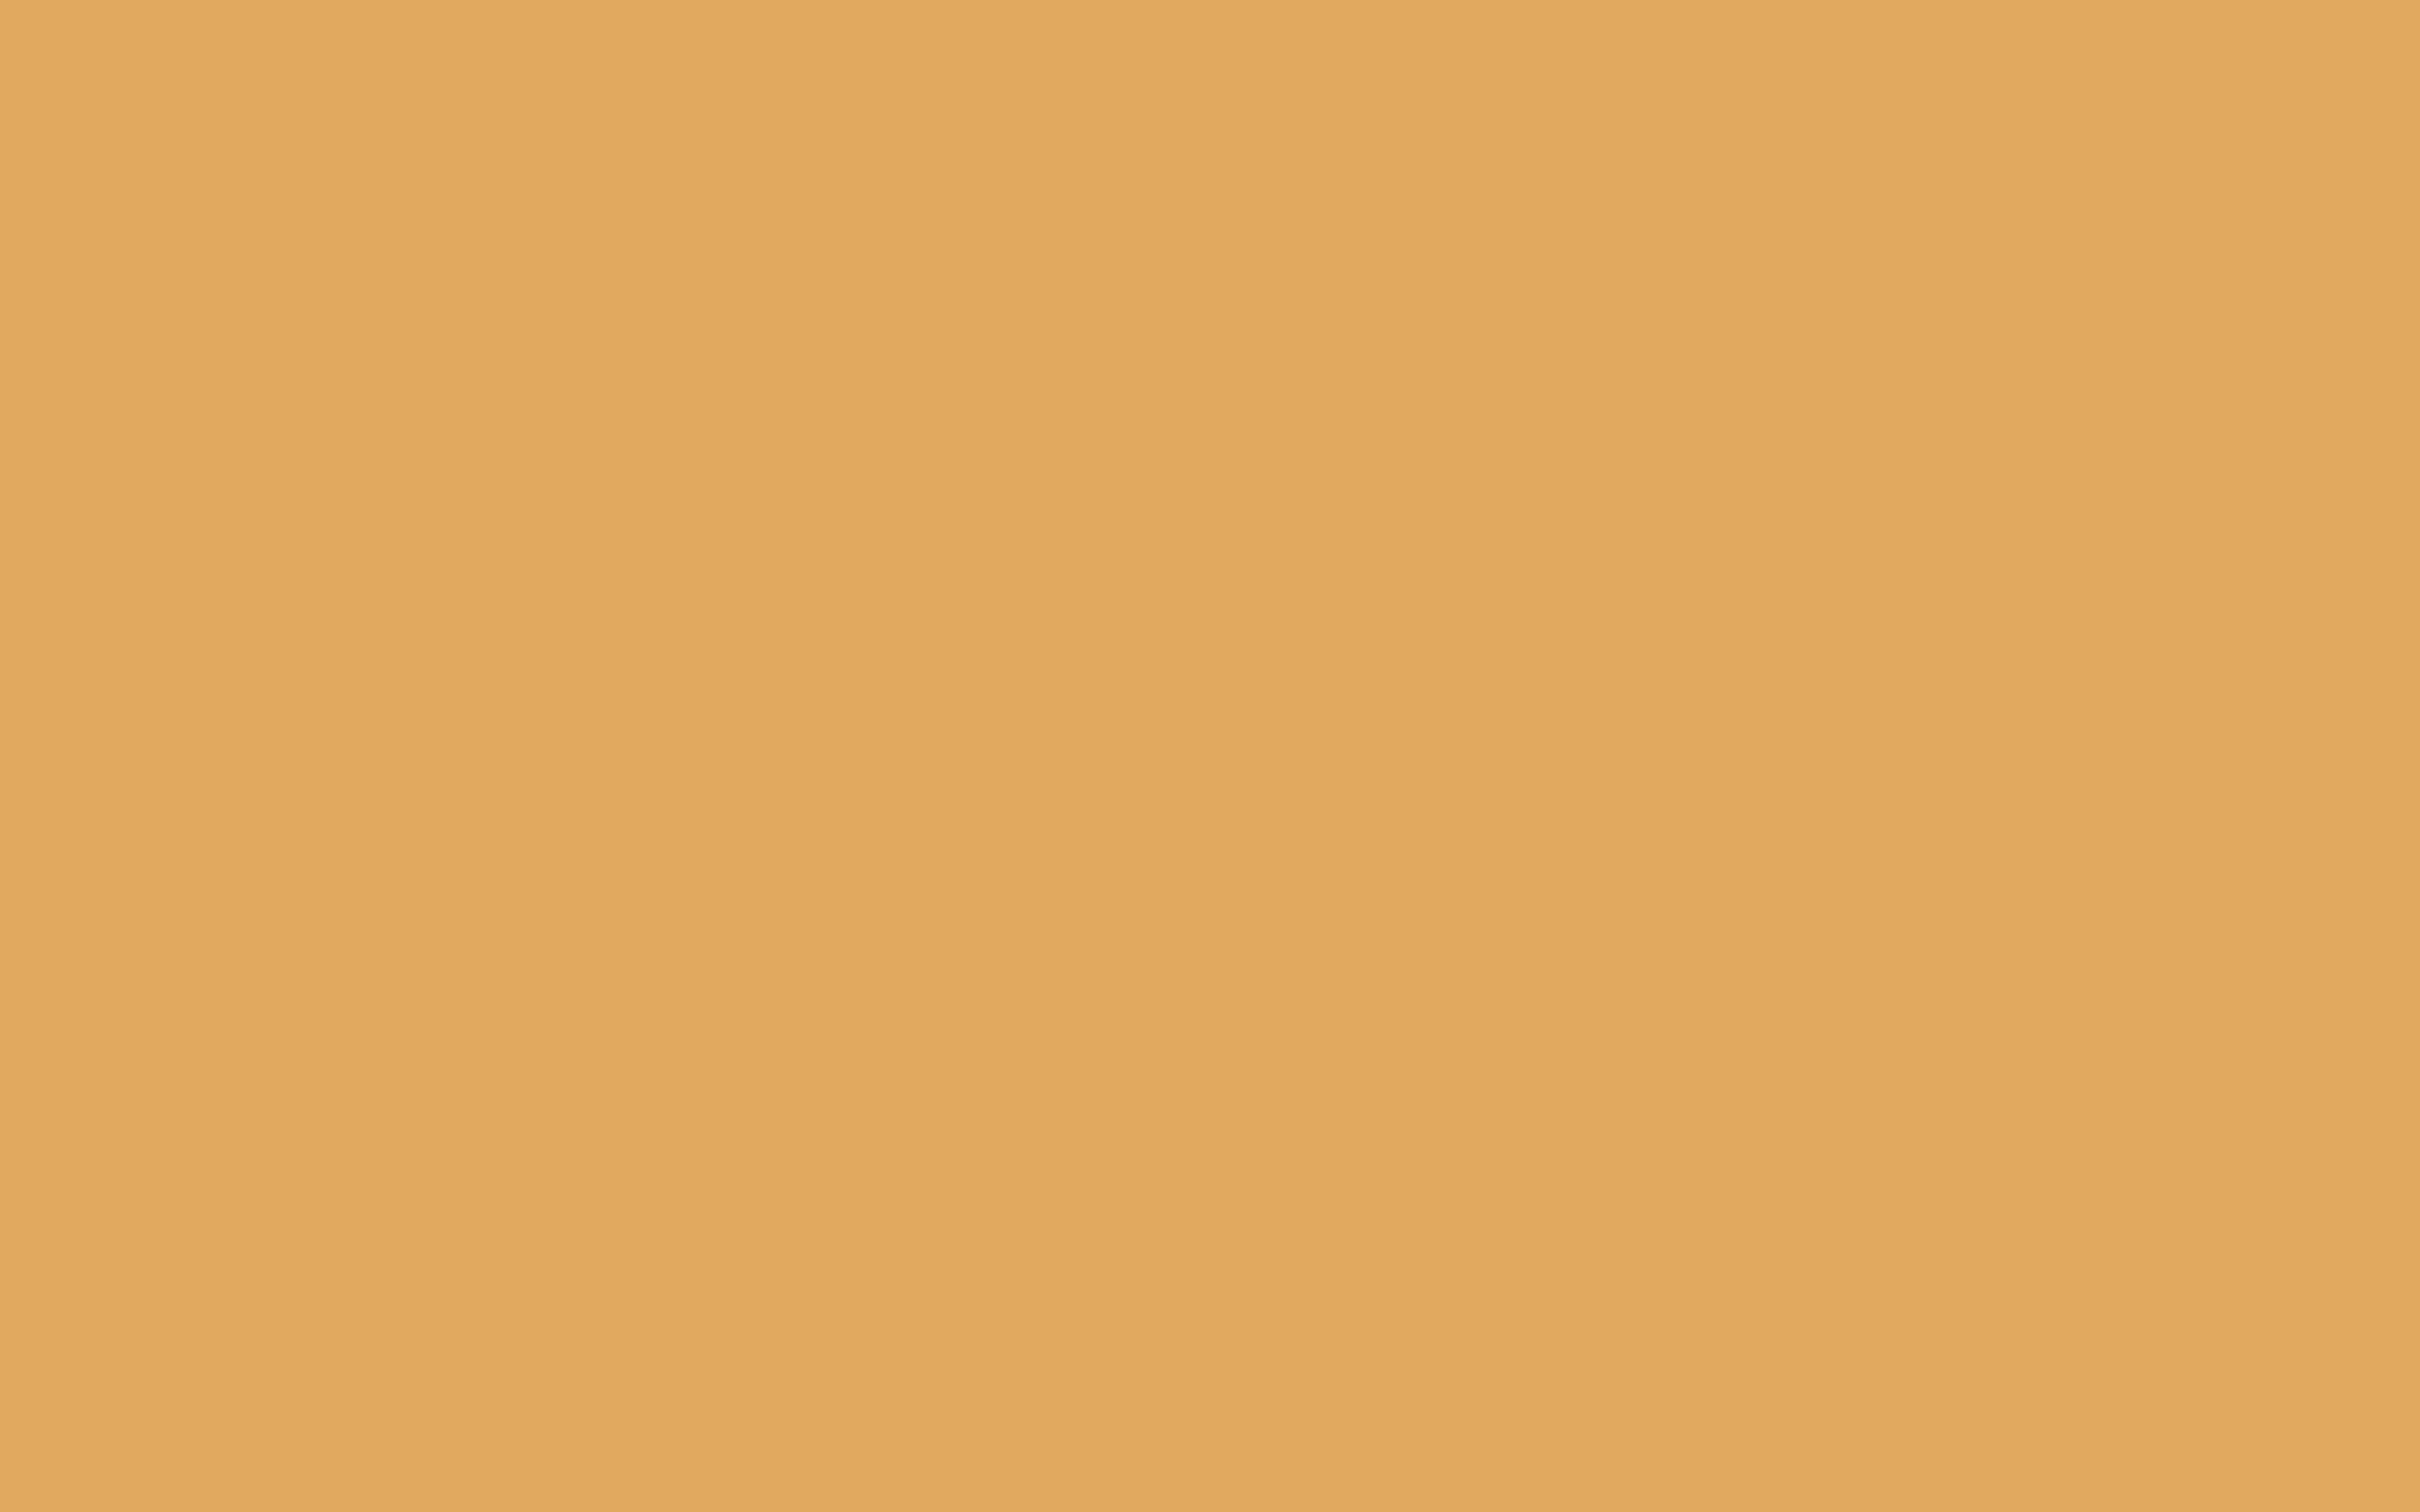 2880x1800 Earth Yellow Solid Color Background